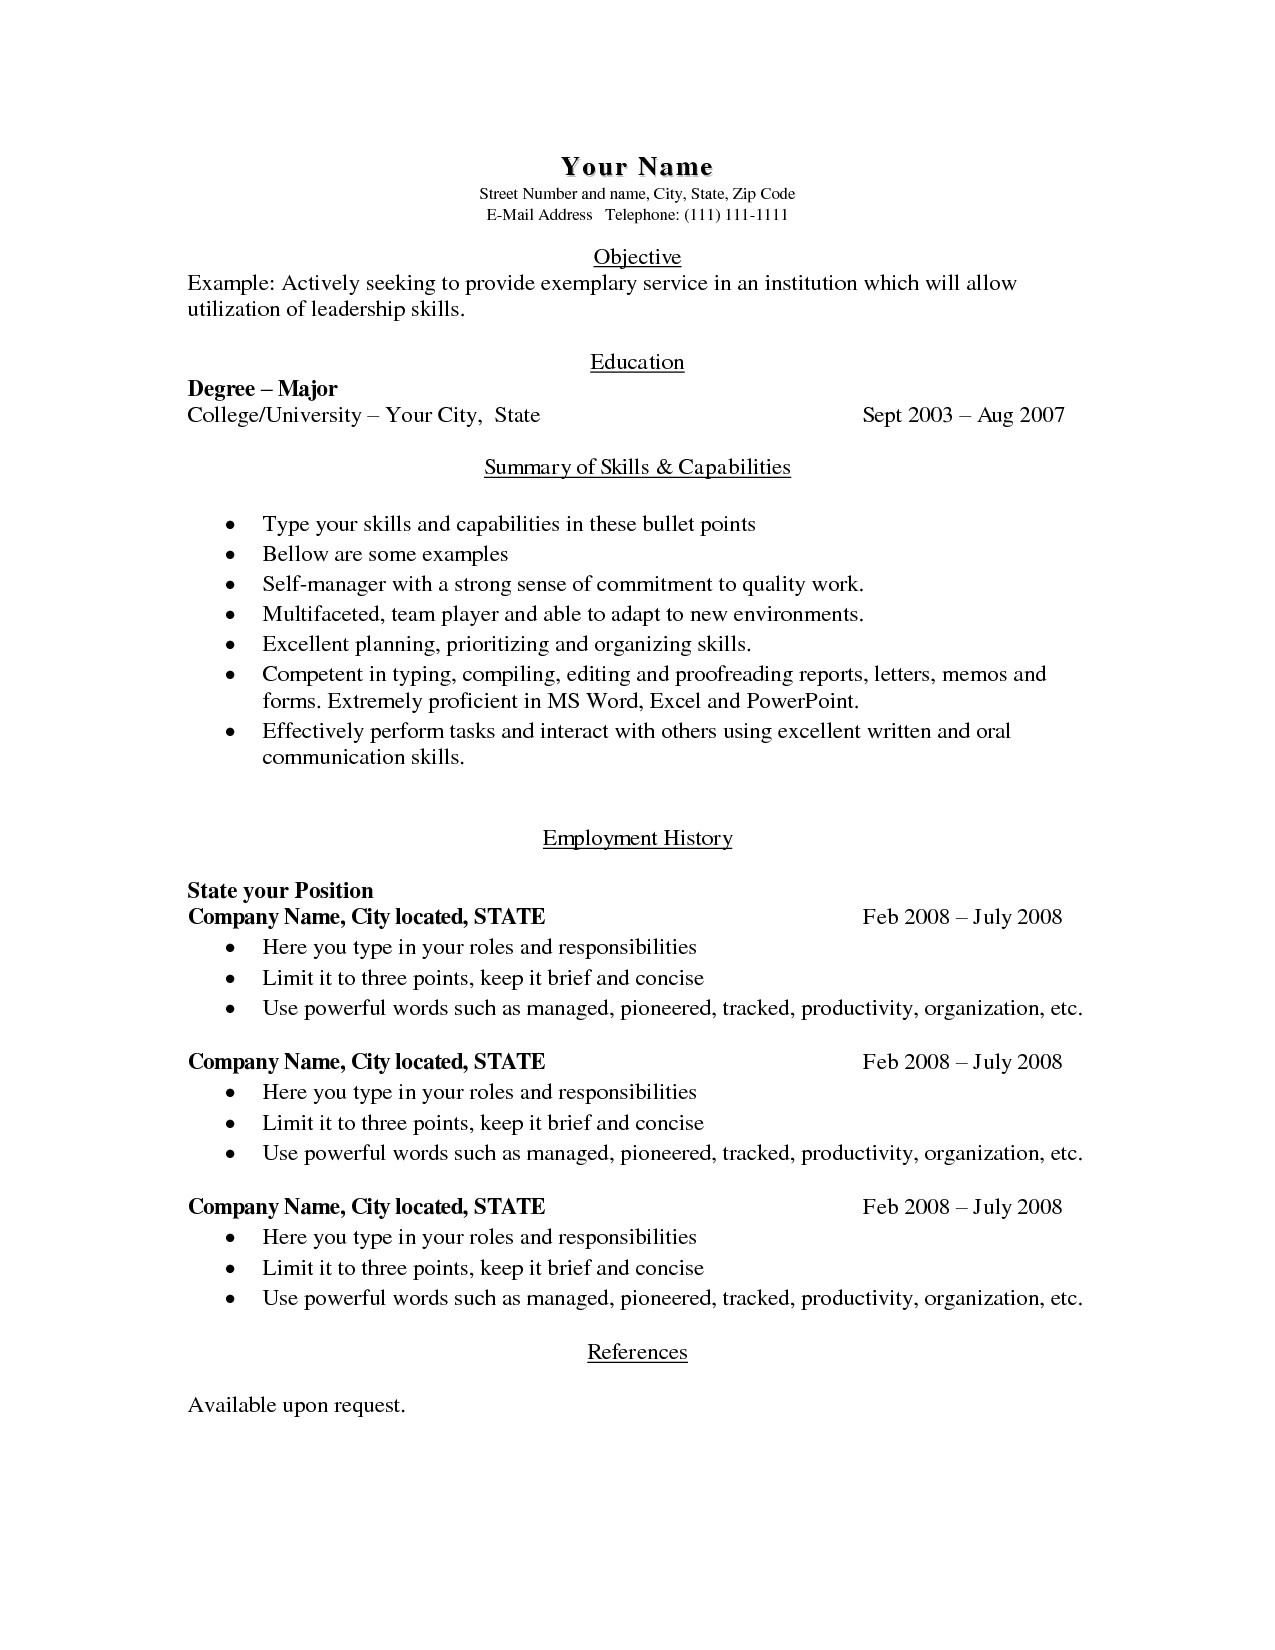 inroads resume template Collection-Download Resume Word Format Fresh Inroads Resume Template Simple It Resume Alan Noscrapleftbehind Co 19-e